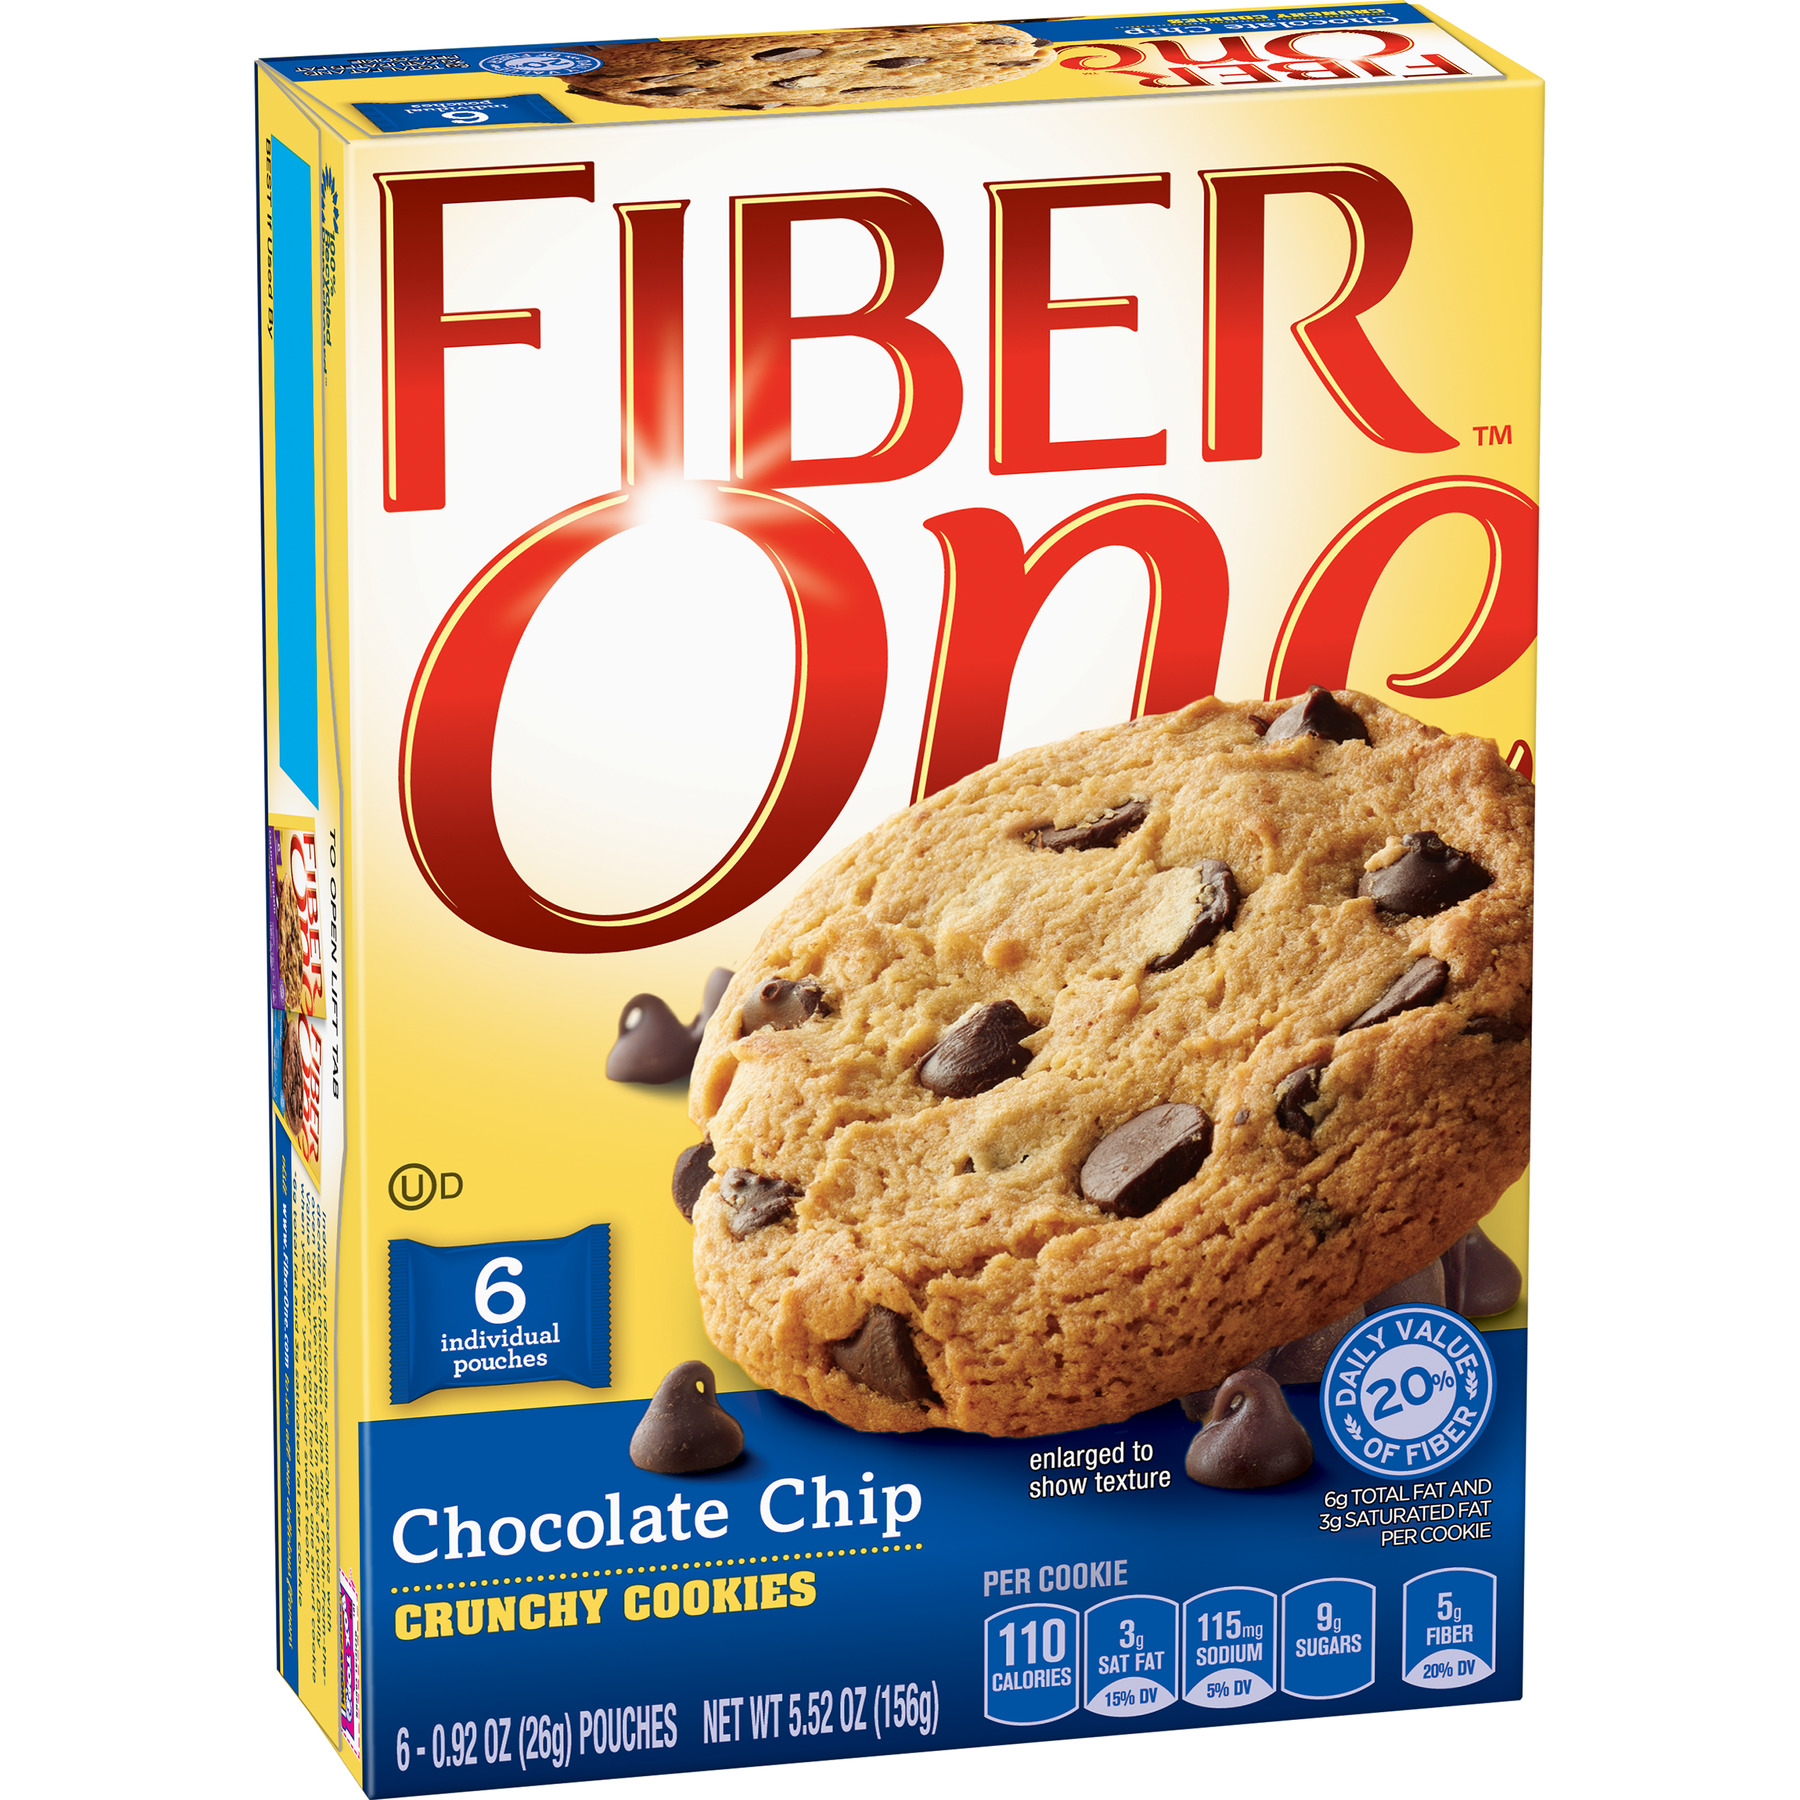 Fiber One Chocolate Chip Crunchy Cookies, 5.52 oz Box